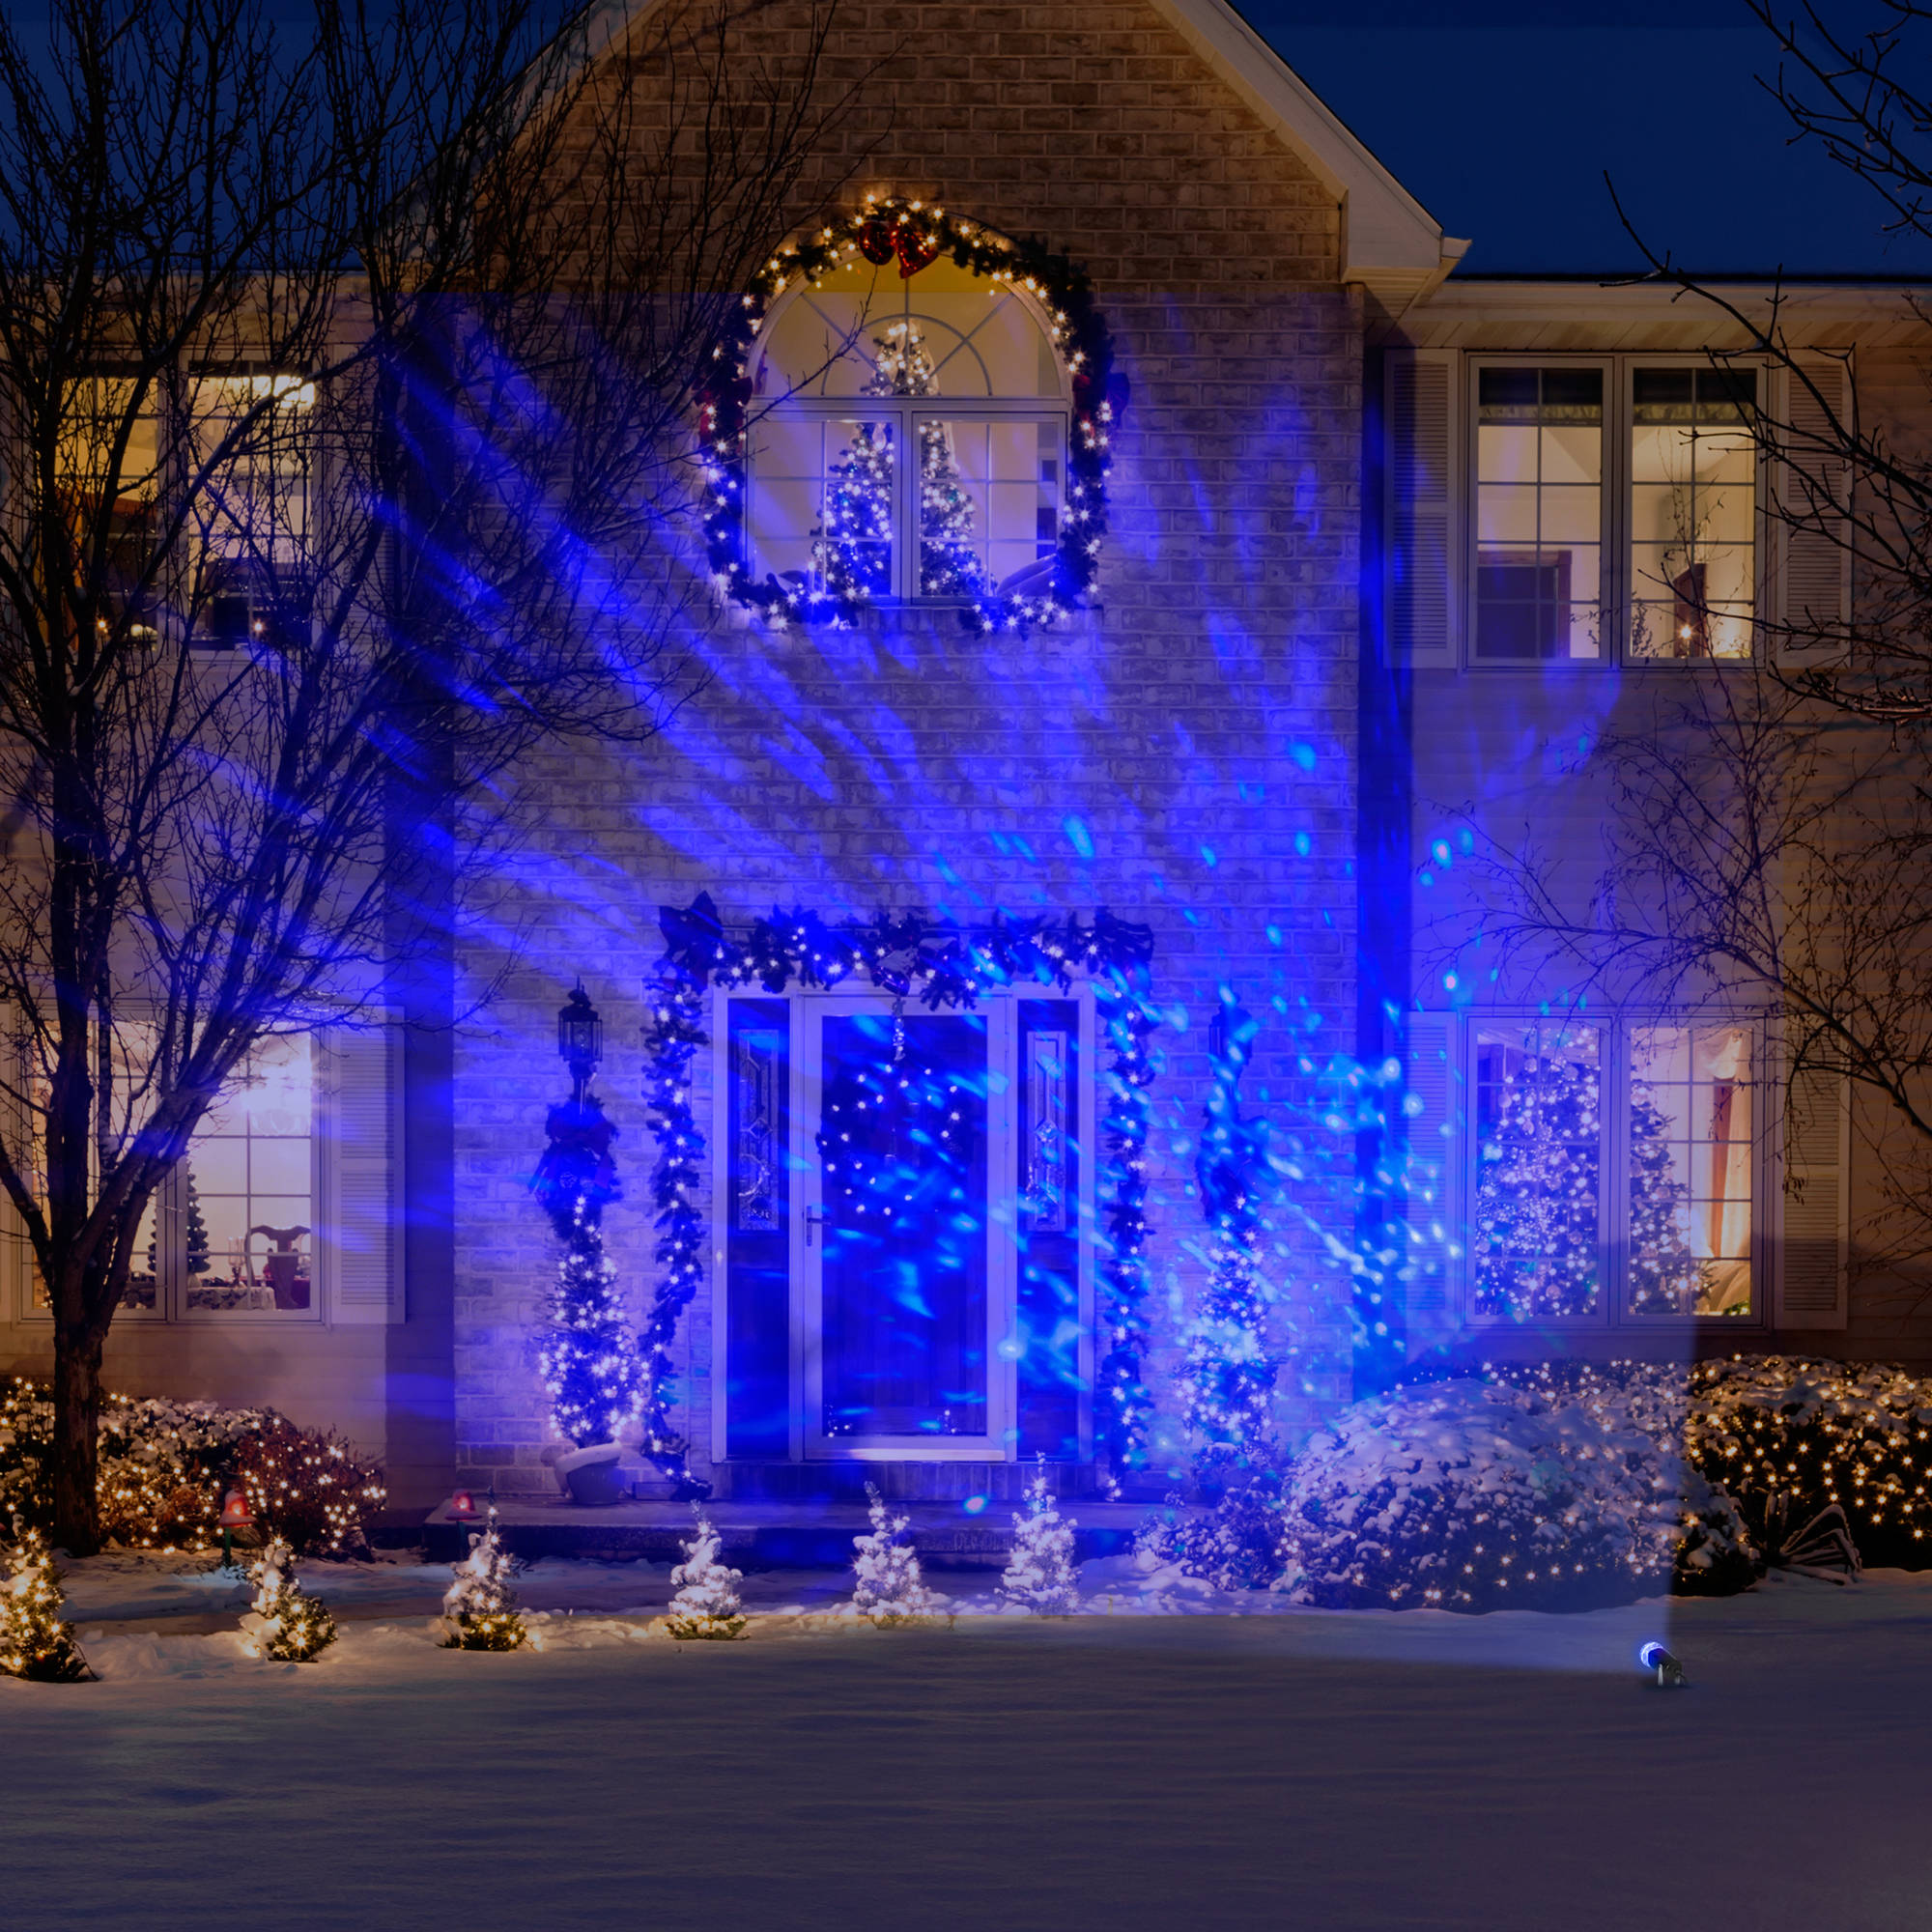 lightshow christmas laser kaleidoscope lights icy blue walmartcom - Blue And White Outdoor Christmas Decorations